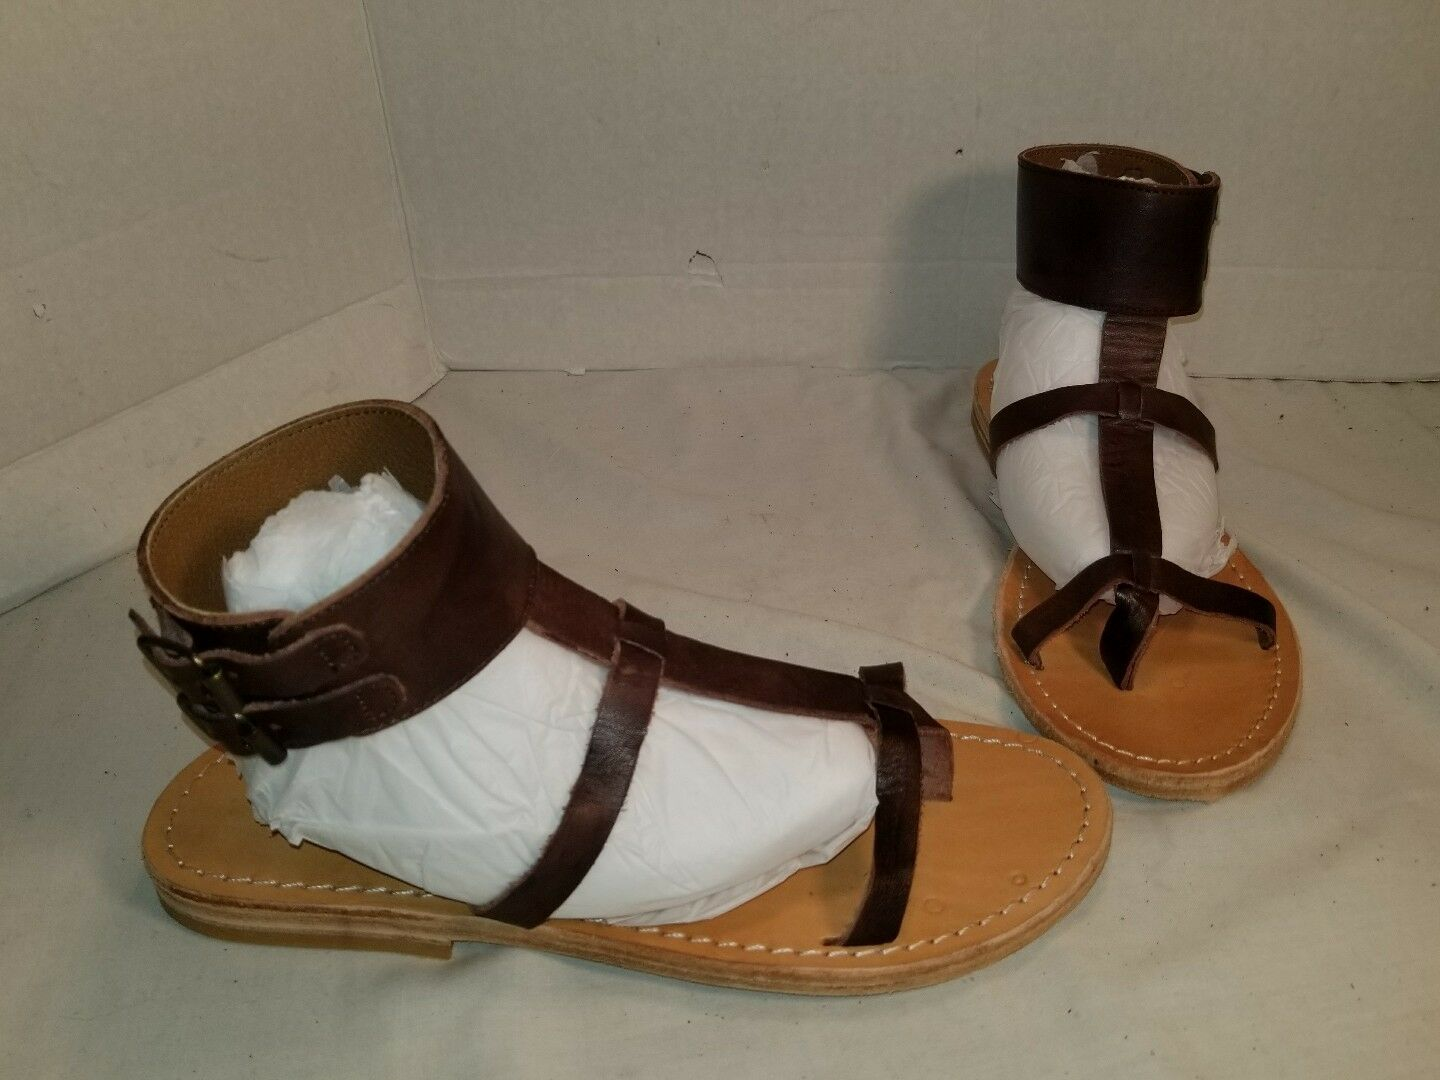 NEW FARYLROBIN BAJA CUFF braun LEATHER damen SANDALS US Größe 9